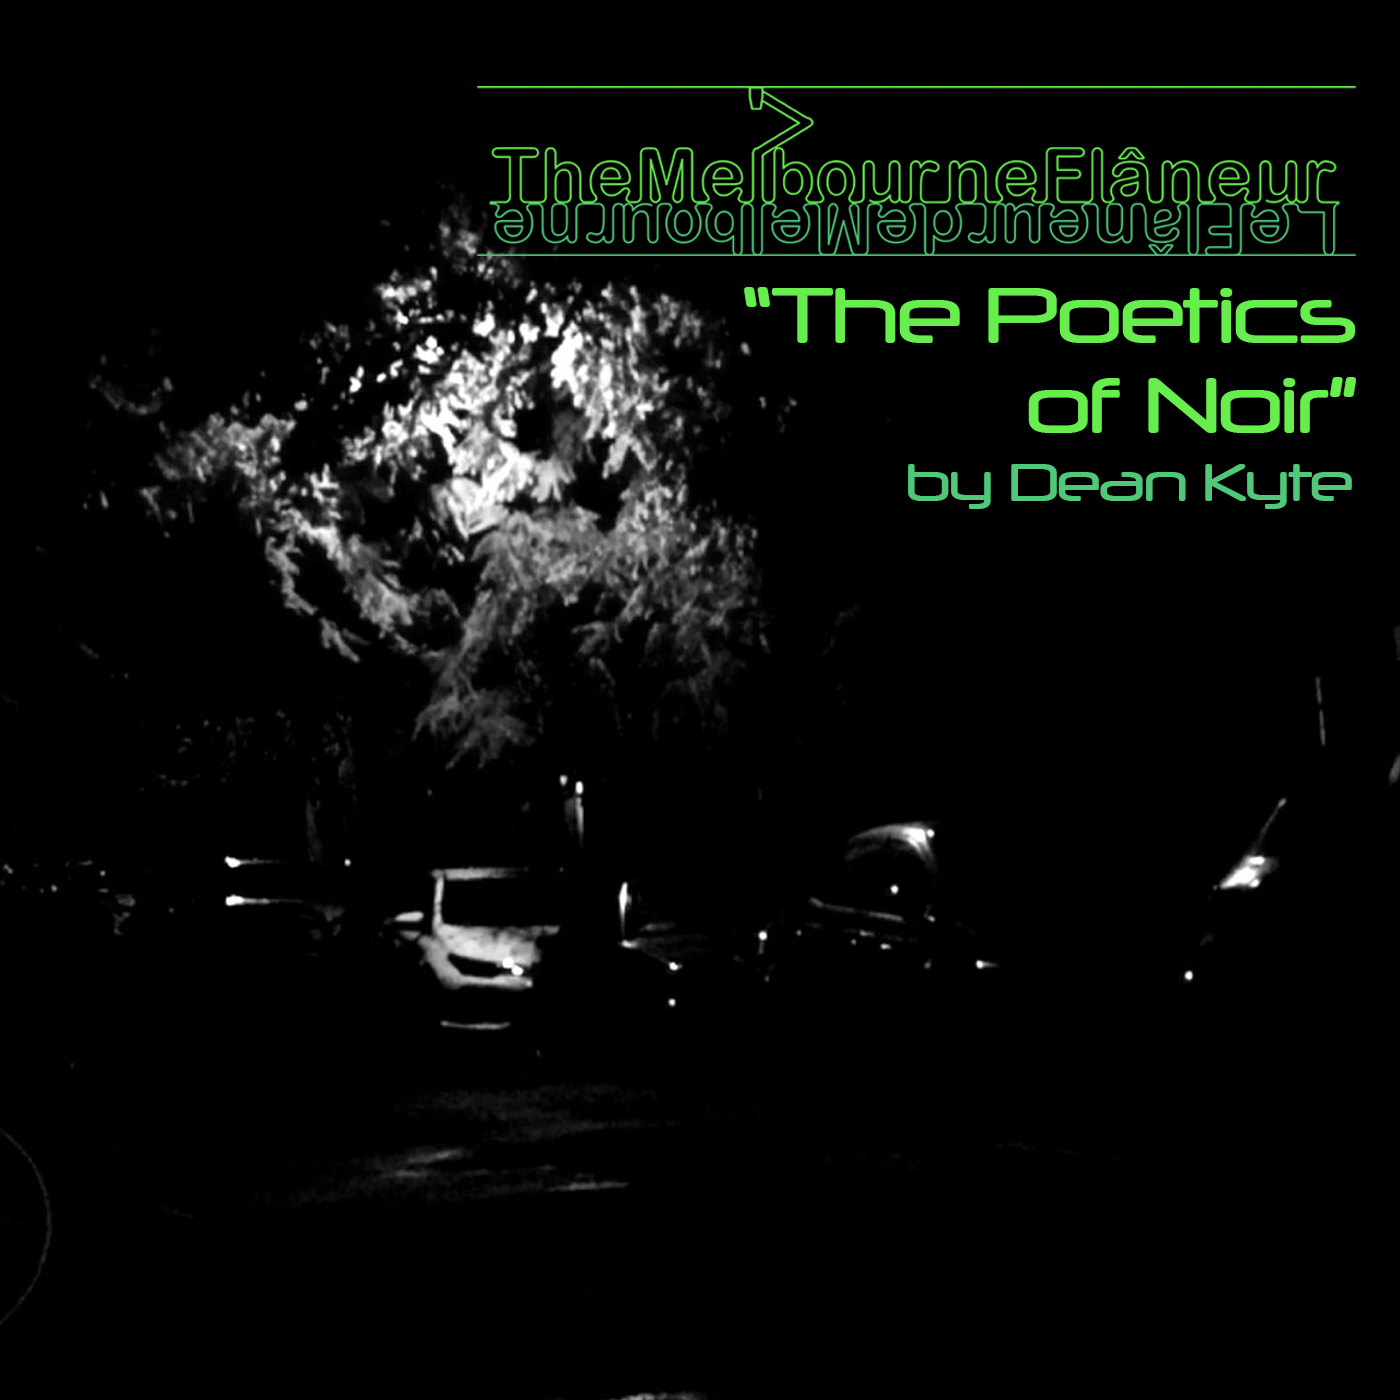 """The Melbourne Flâneur"": ""The Poetics of Noir"", by Dean Kyte"